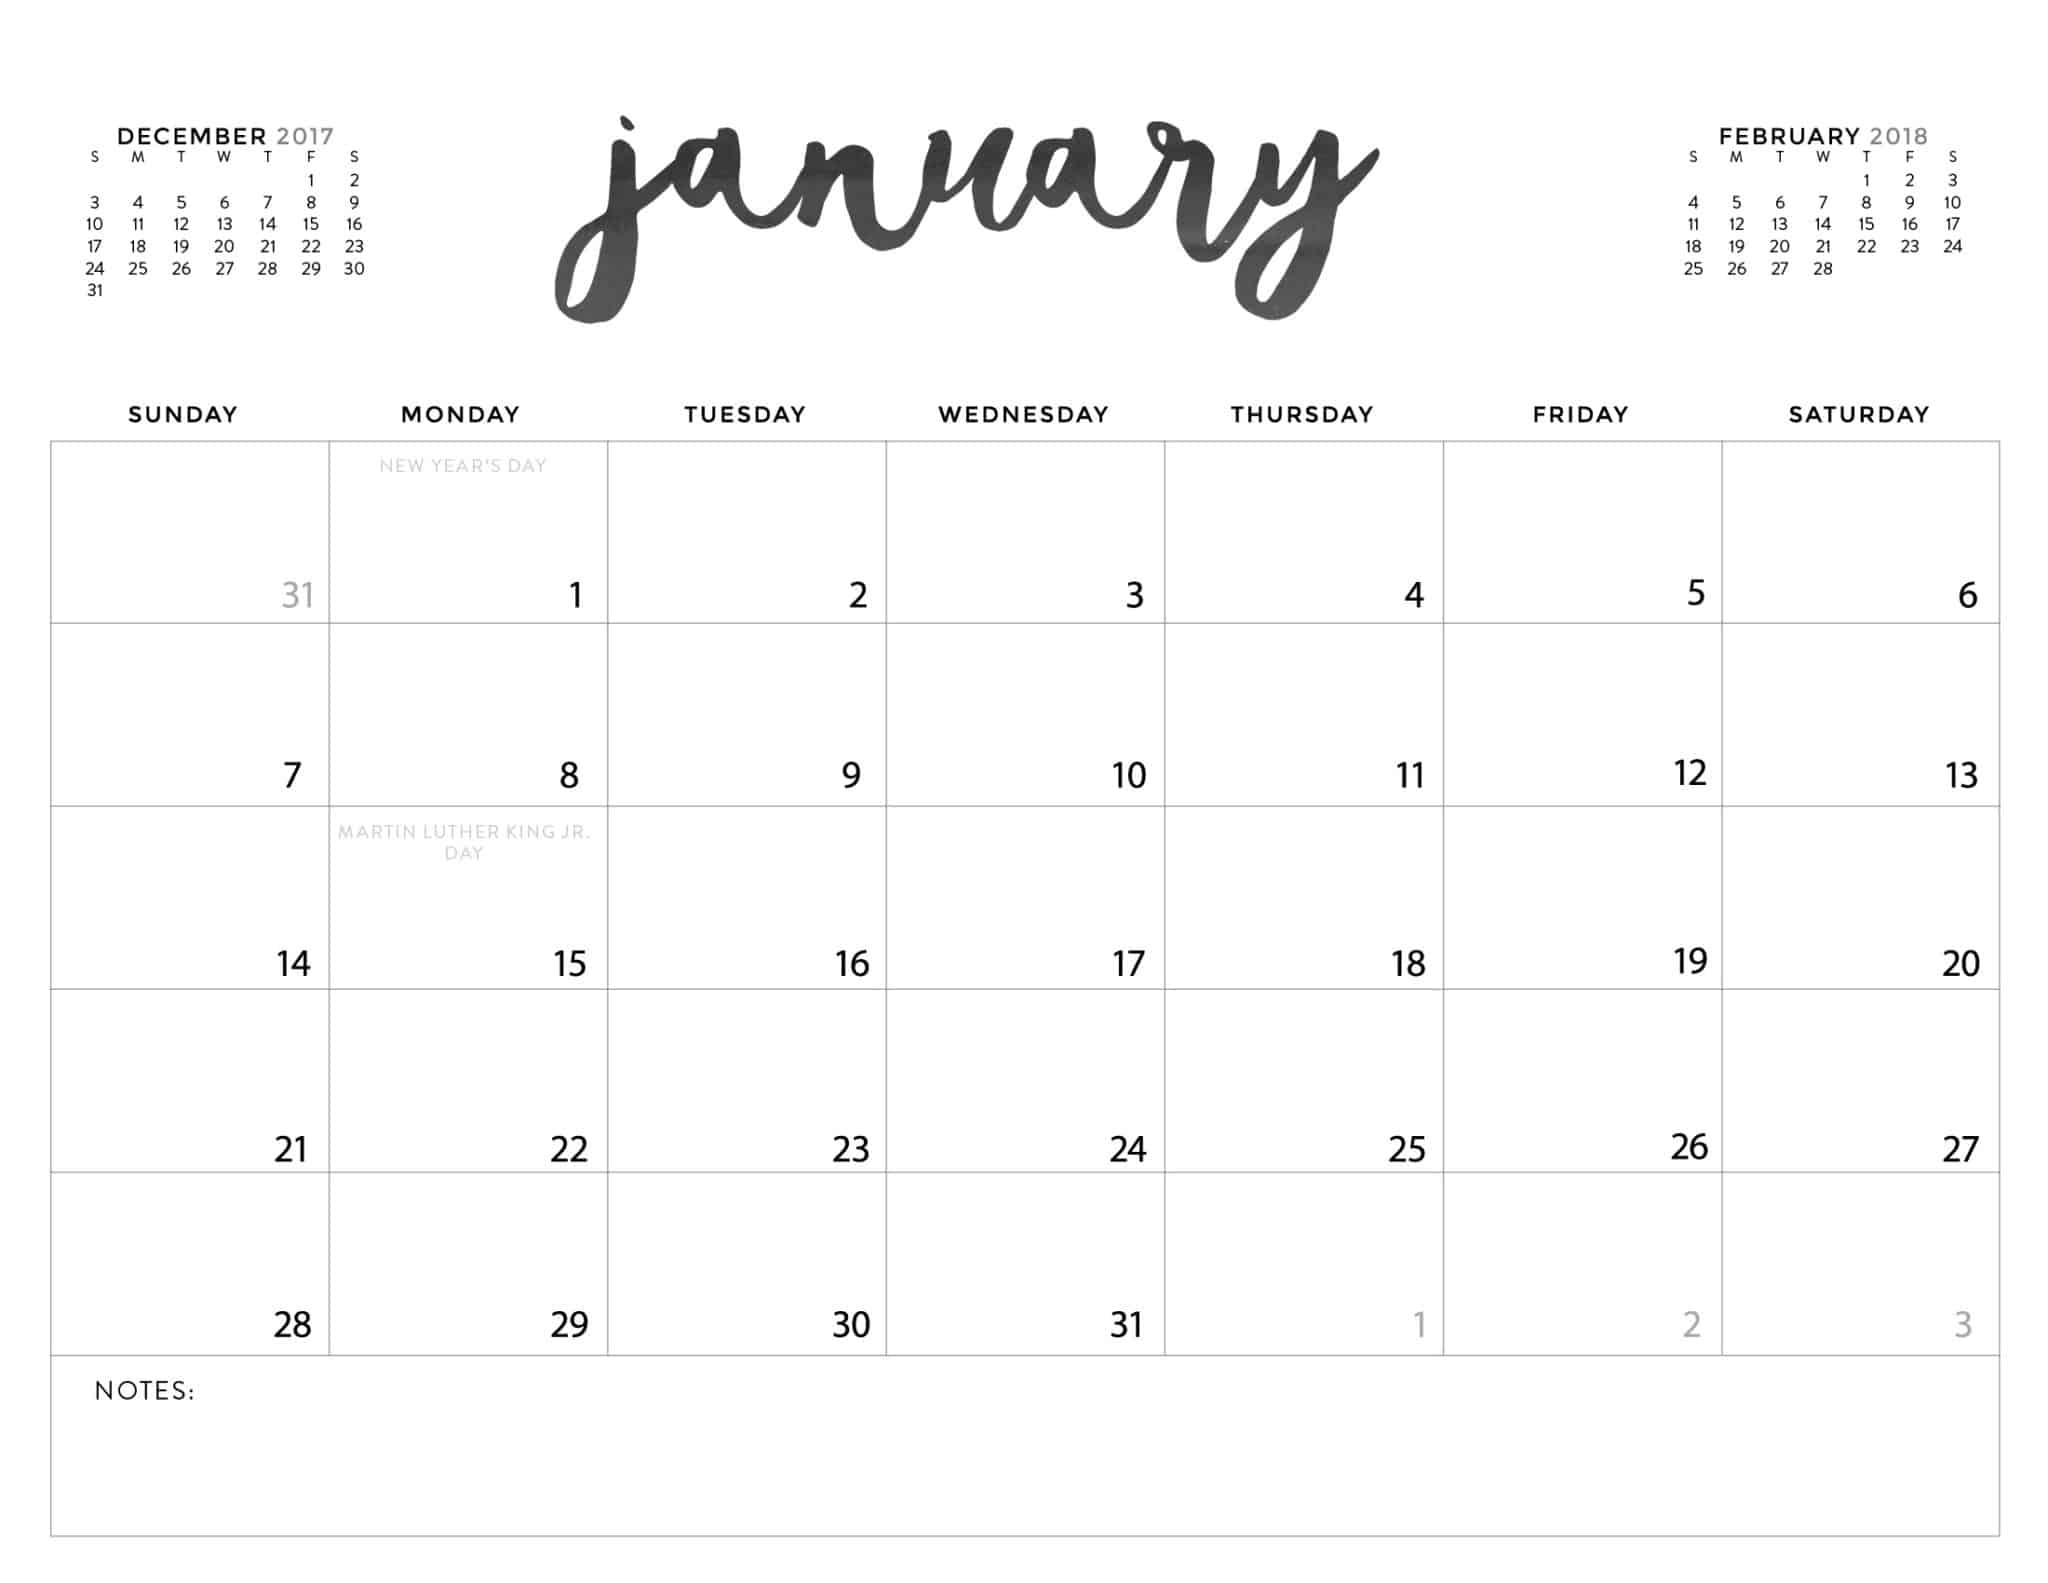 Download Your Free Printable Calendars Today There Are 28 Designs To Choose From In Both